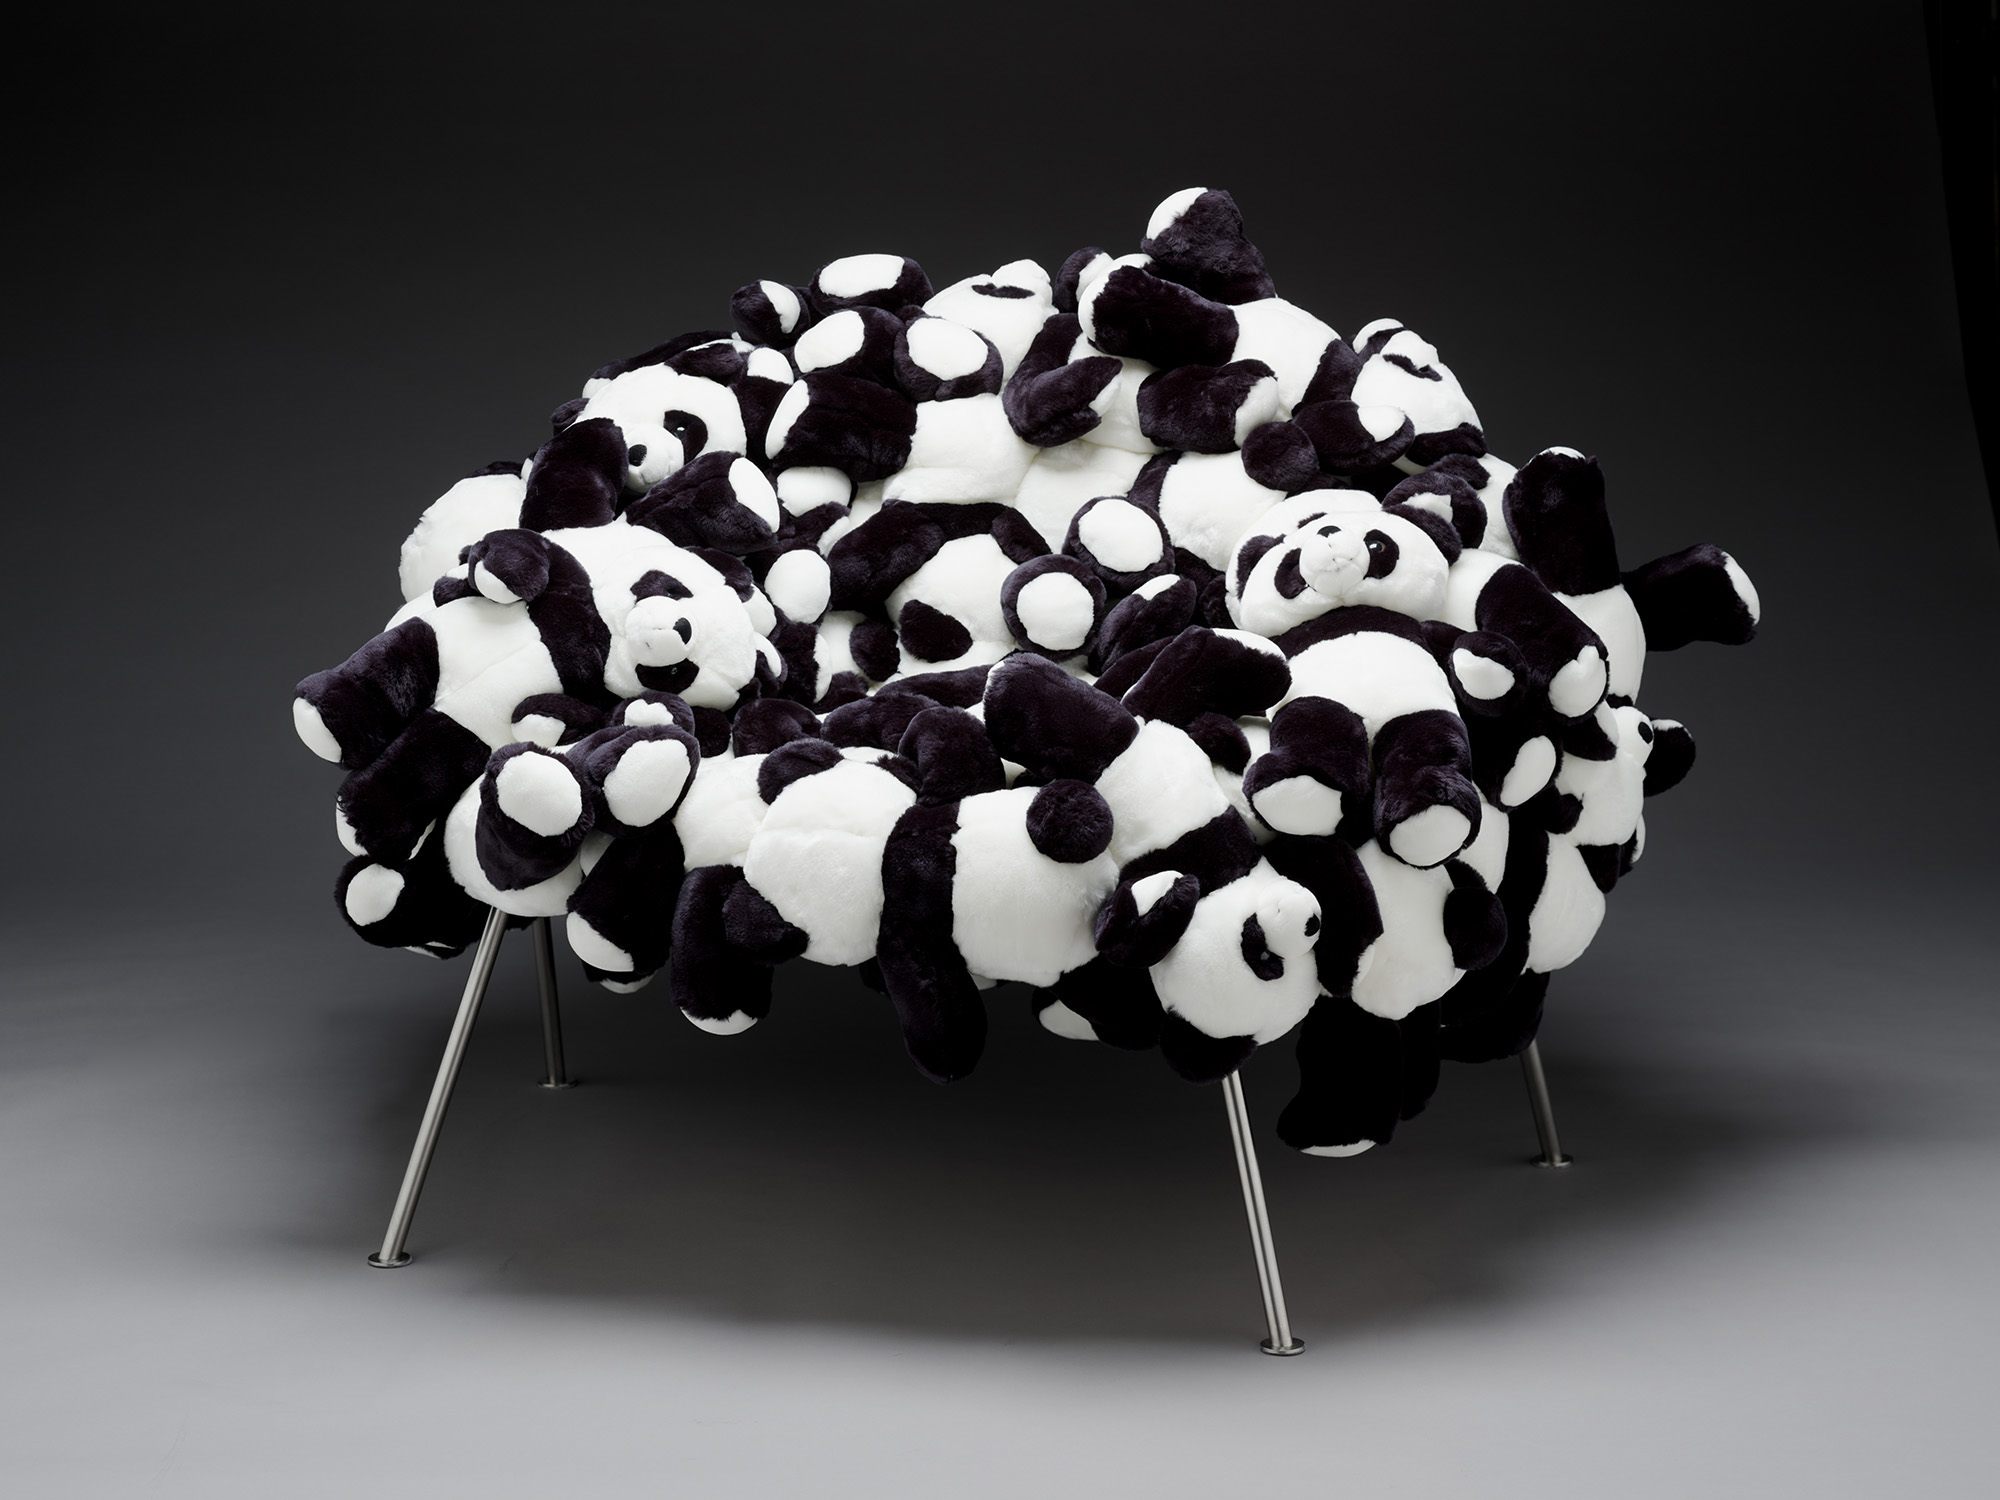 The Best of Collectible Design: Campana Brothers campana brothers The Best of Collectible Design: Campana Brothers Campana Panda Banquete Chair